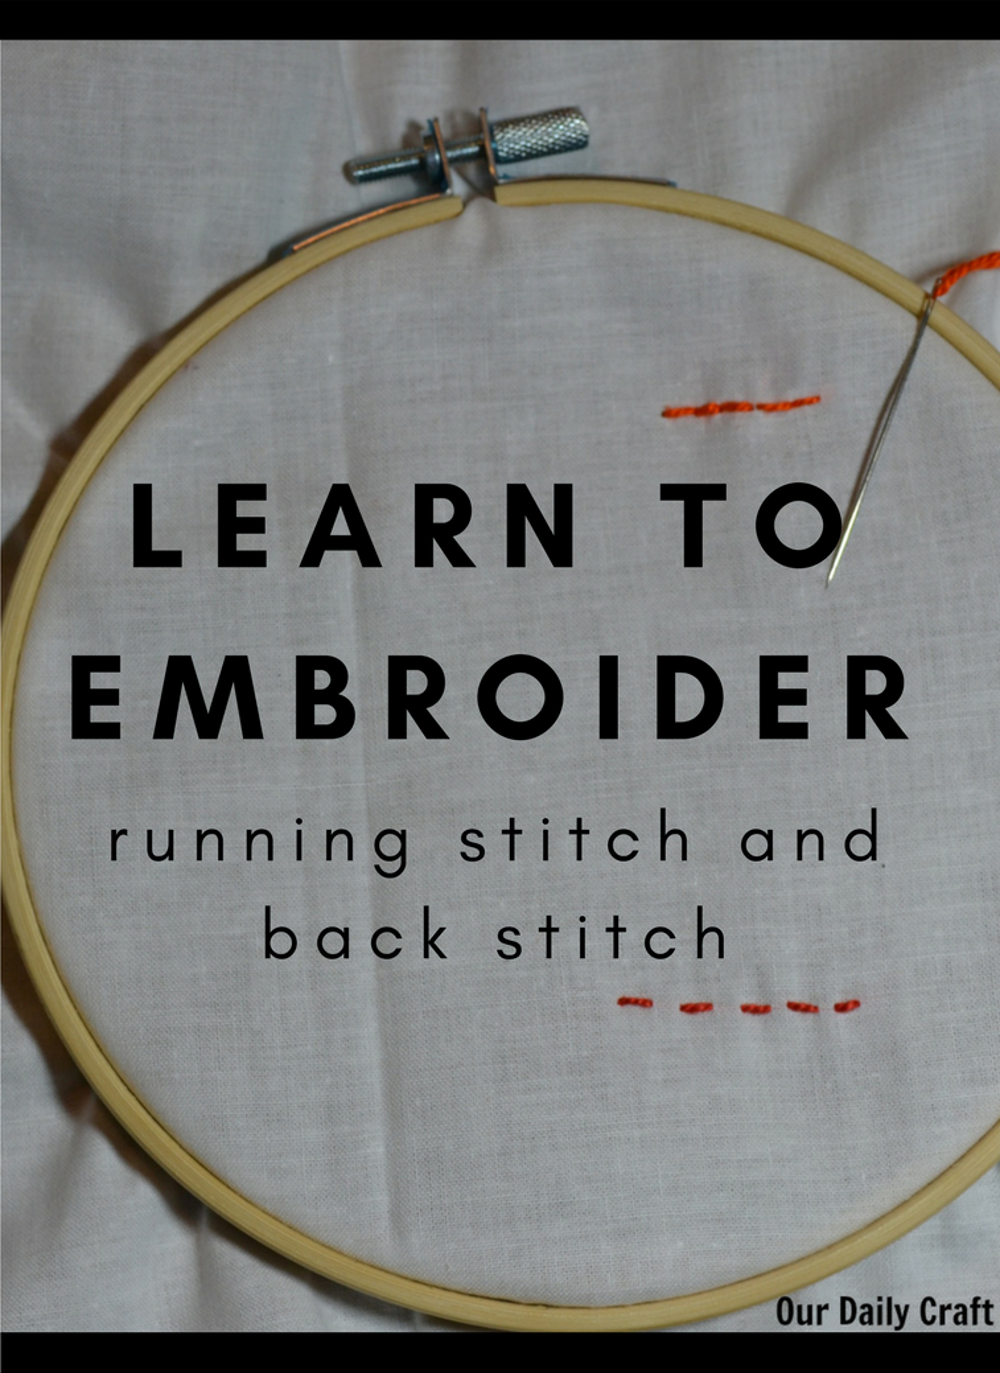 Basic Embroidery Stitches: Running Stitch and Back Stitch